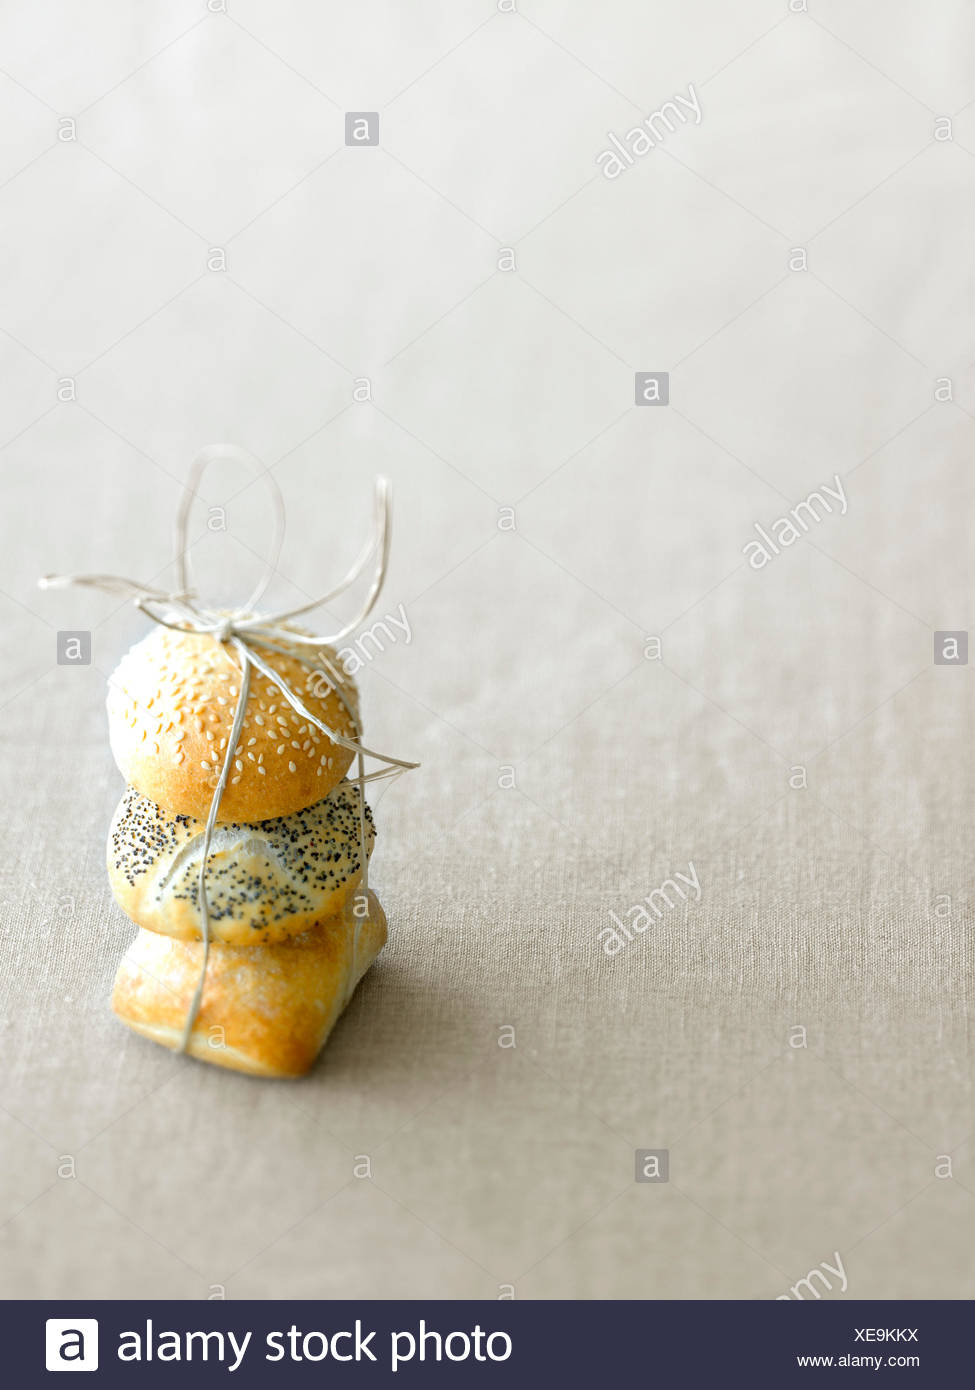 Three little breads tied together - Stock Image